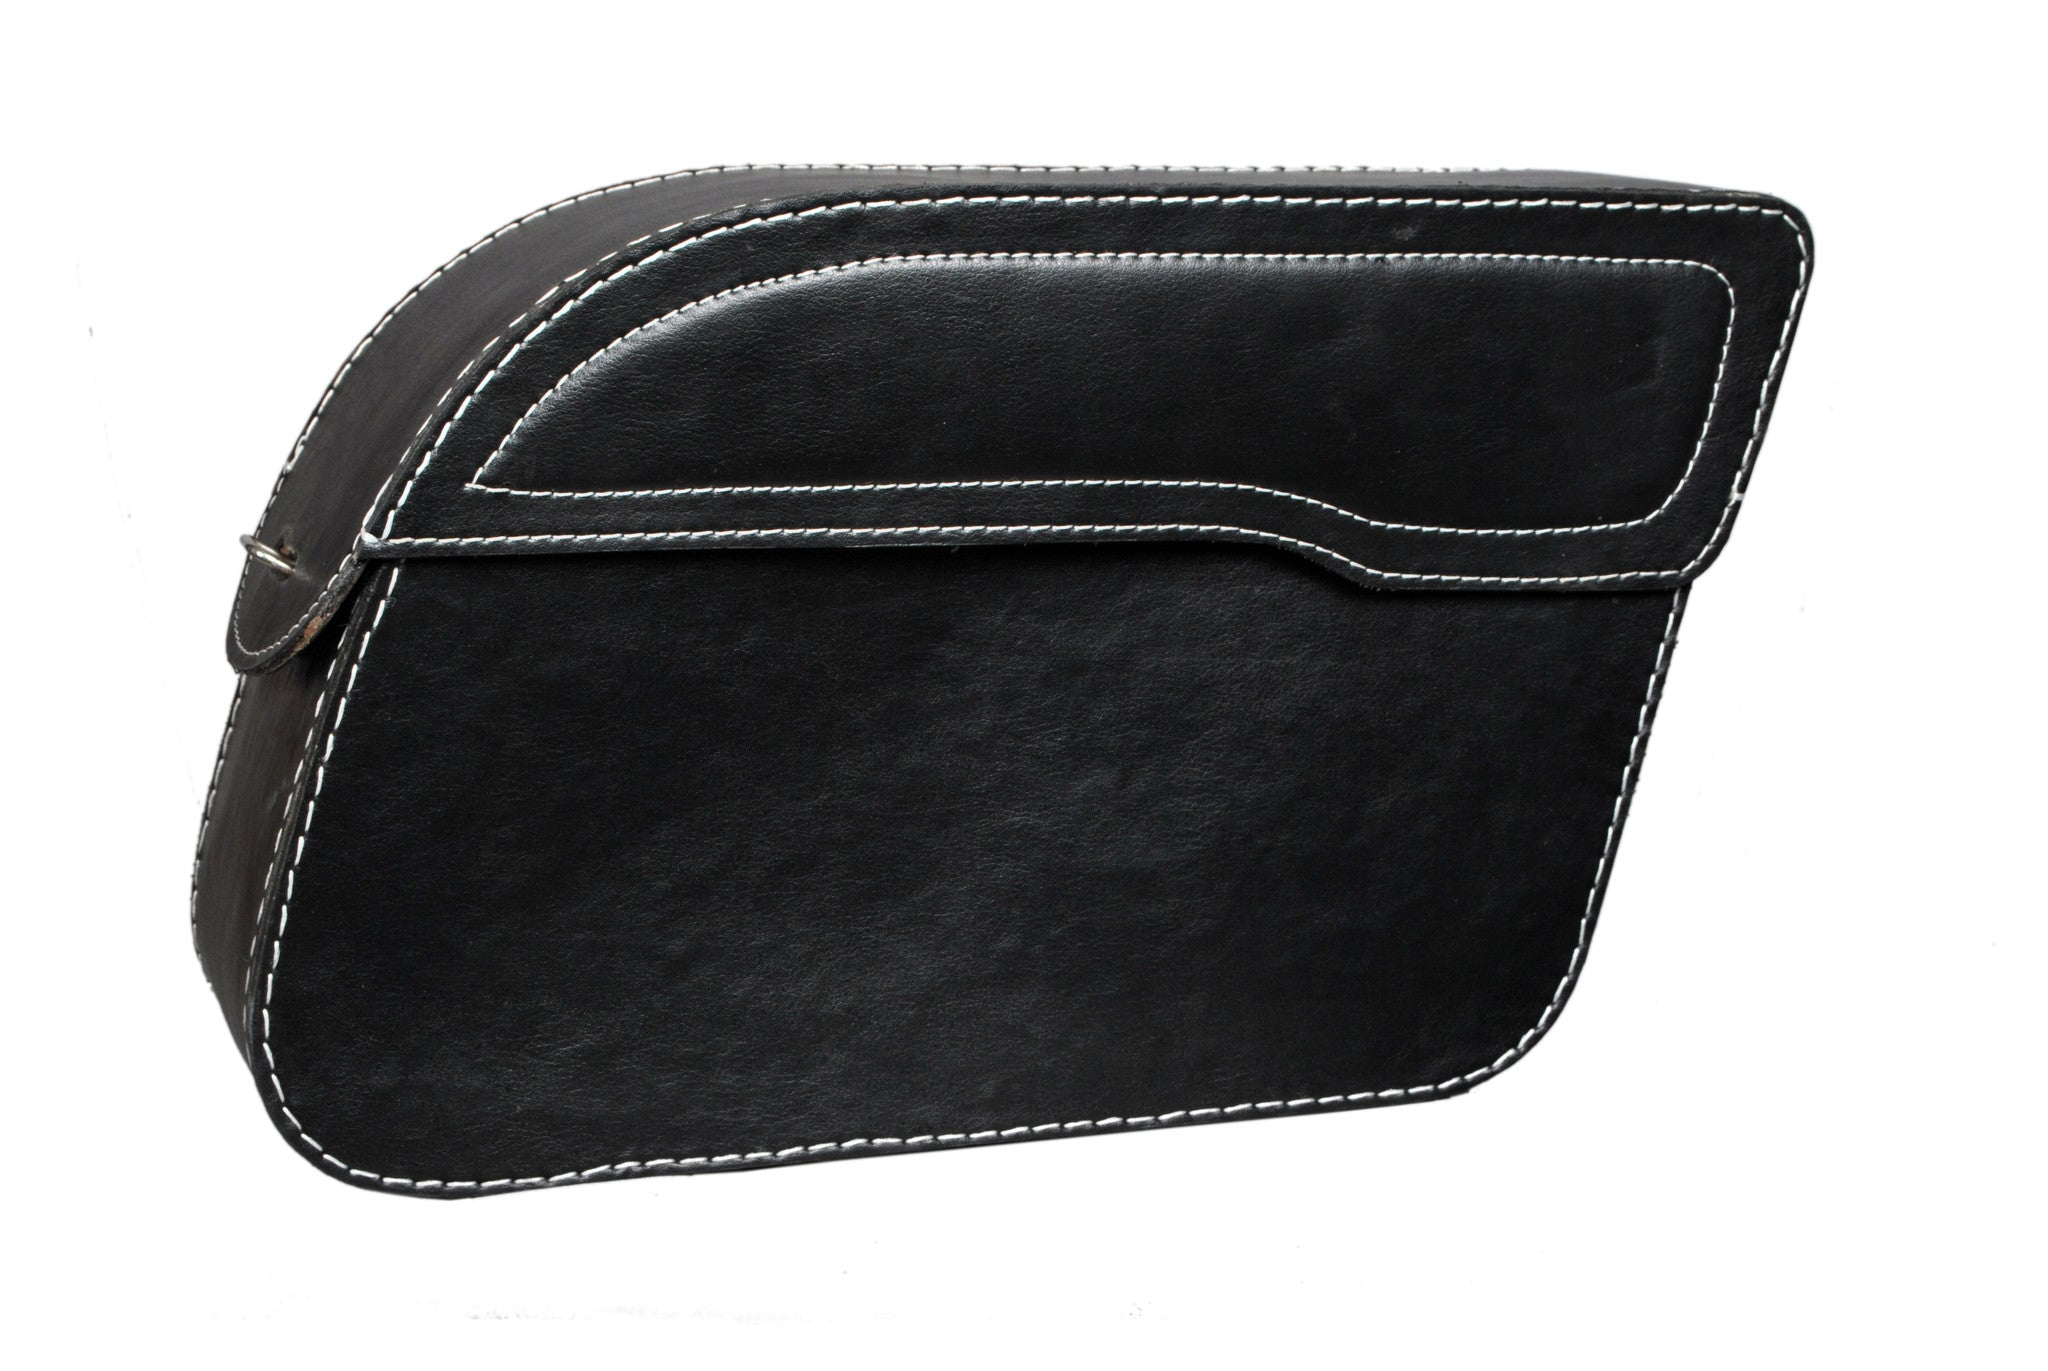 Black Plain Flap Saddlebag 1 Buckle Leather AFREZ-5003